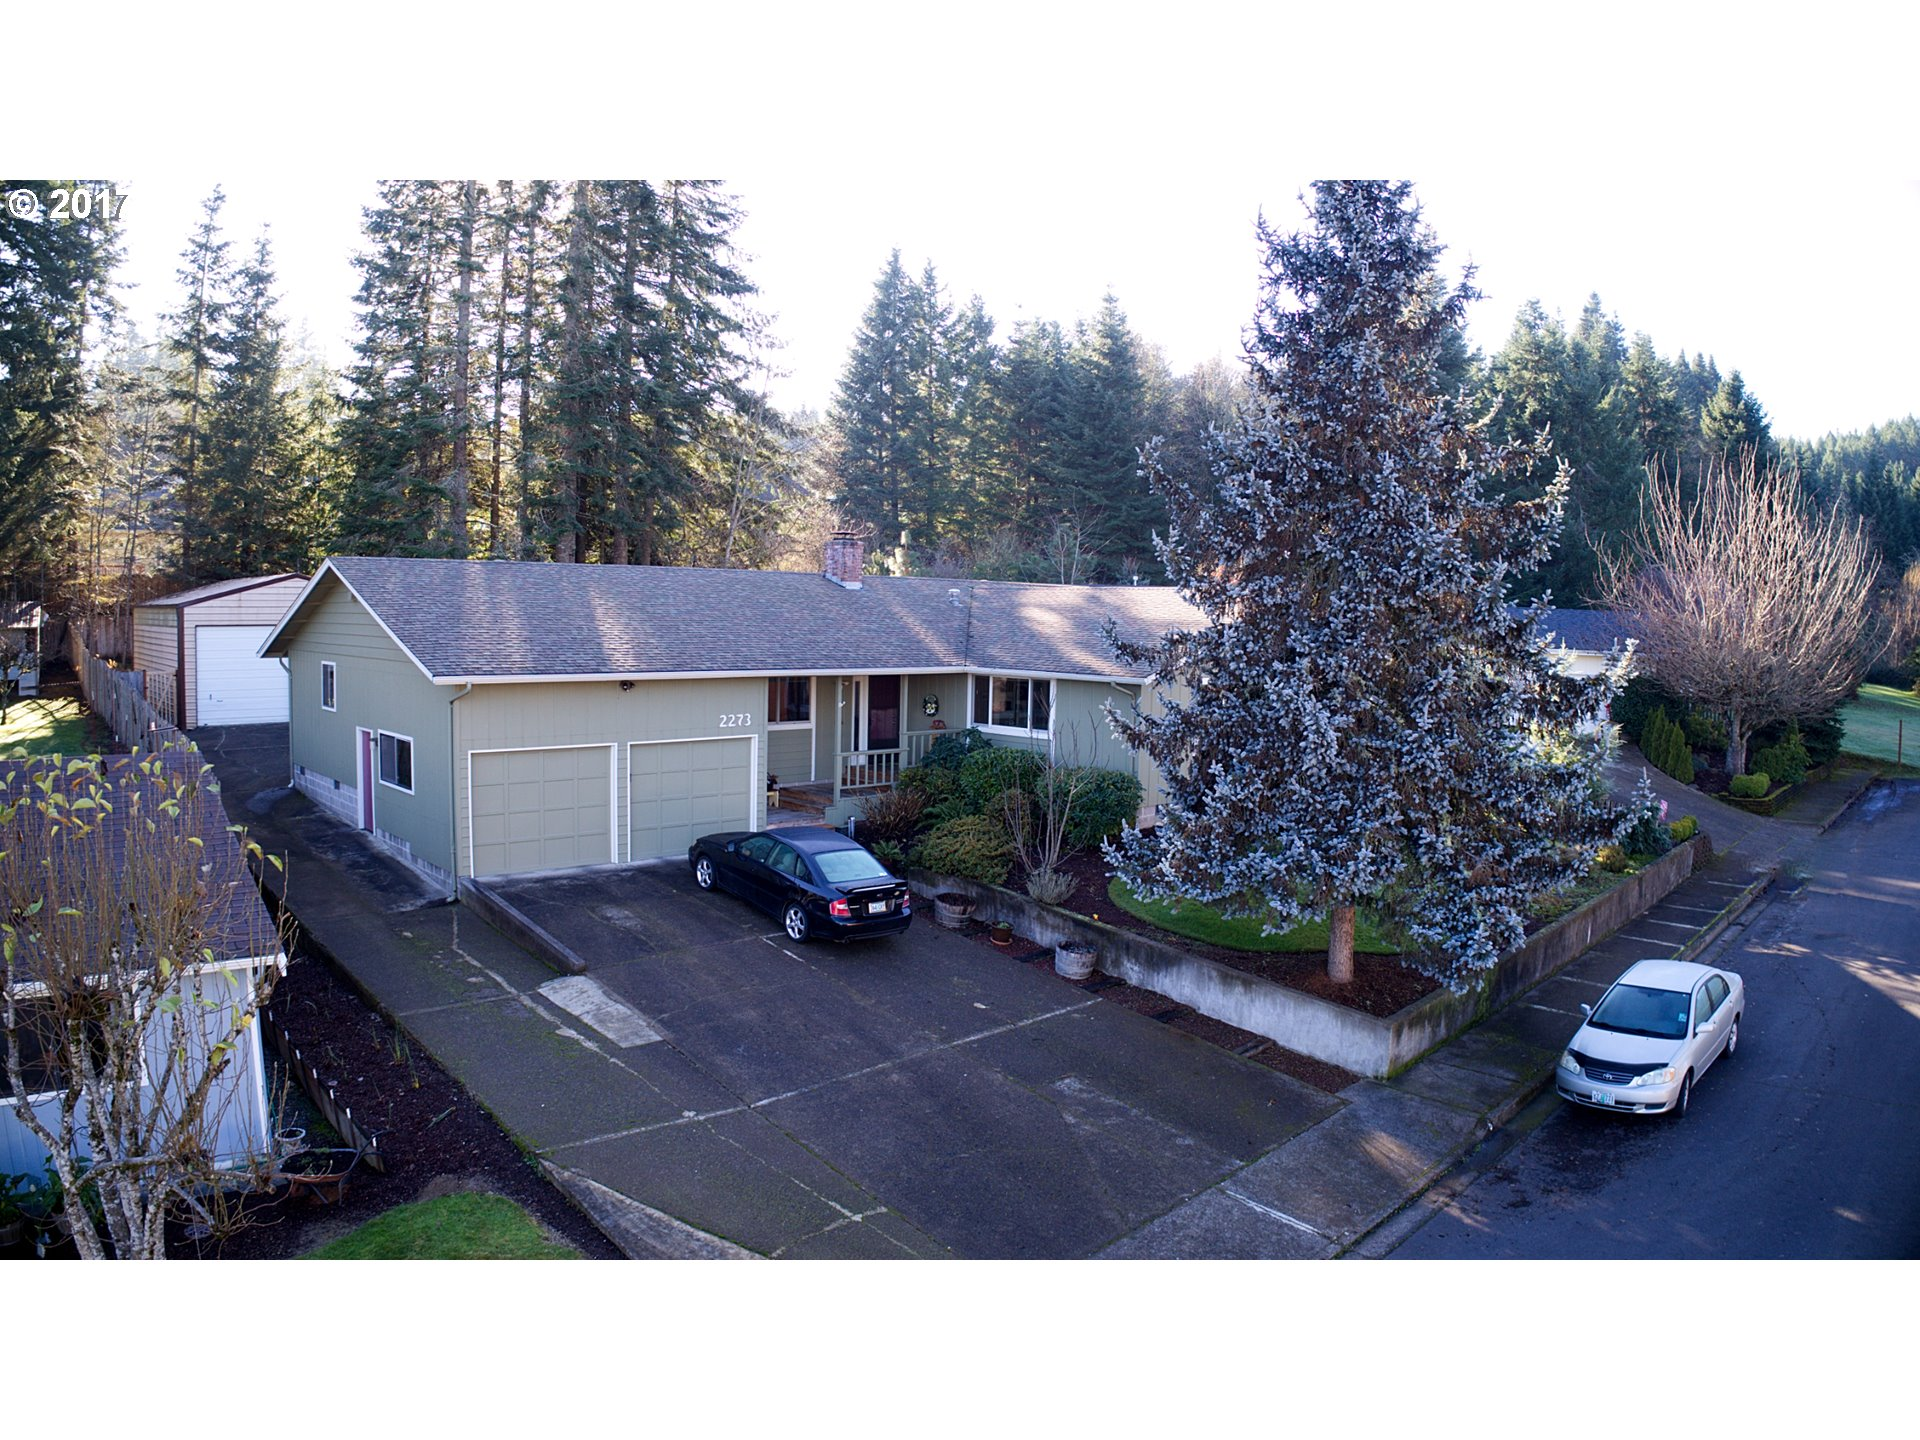 2273 W HARRISON AVE, Cottage Grove OR 97424